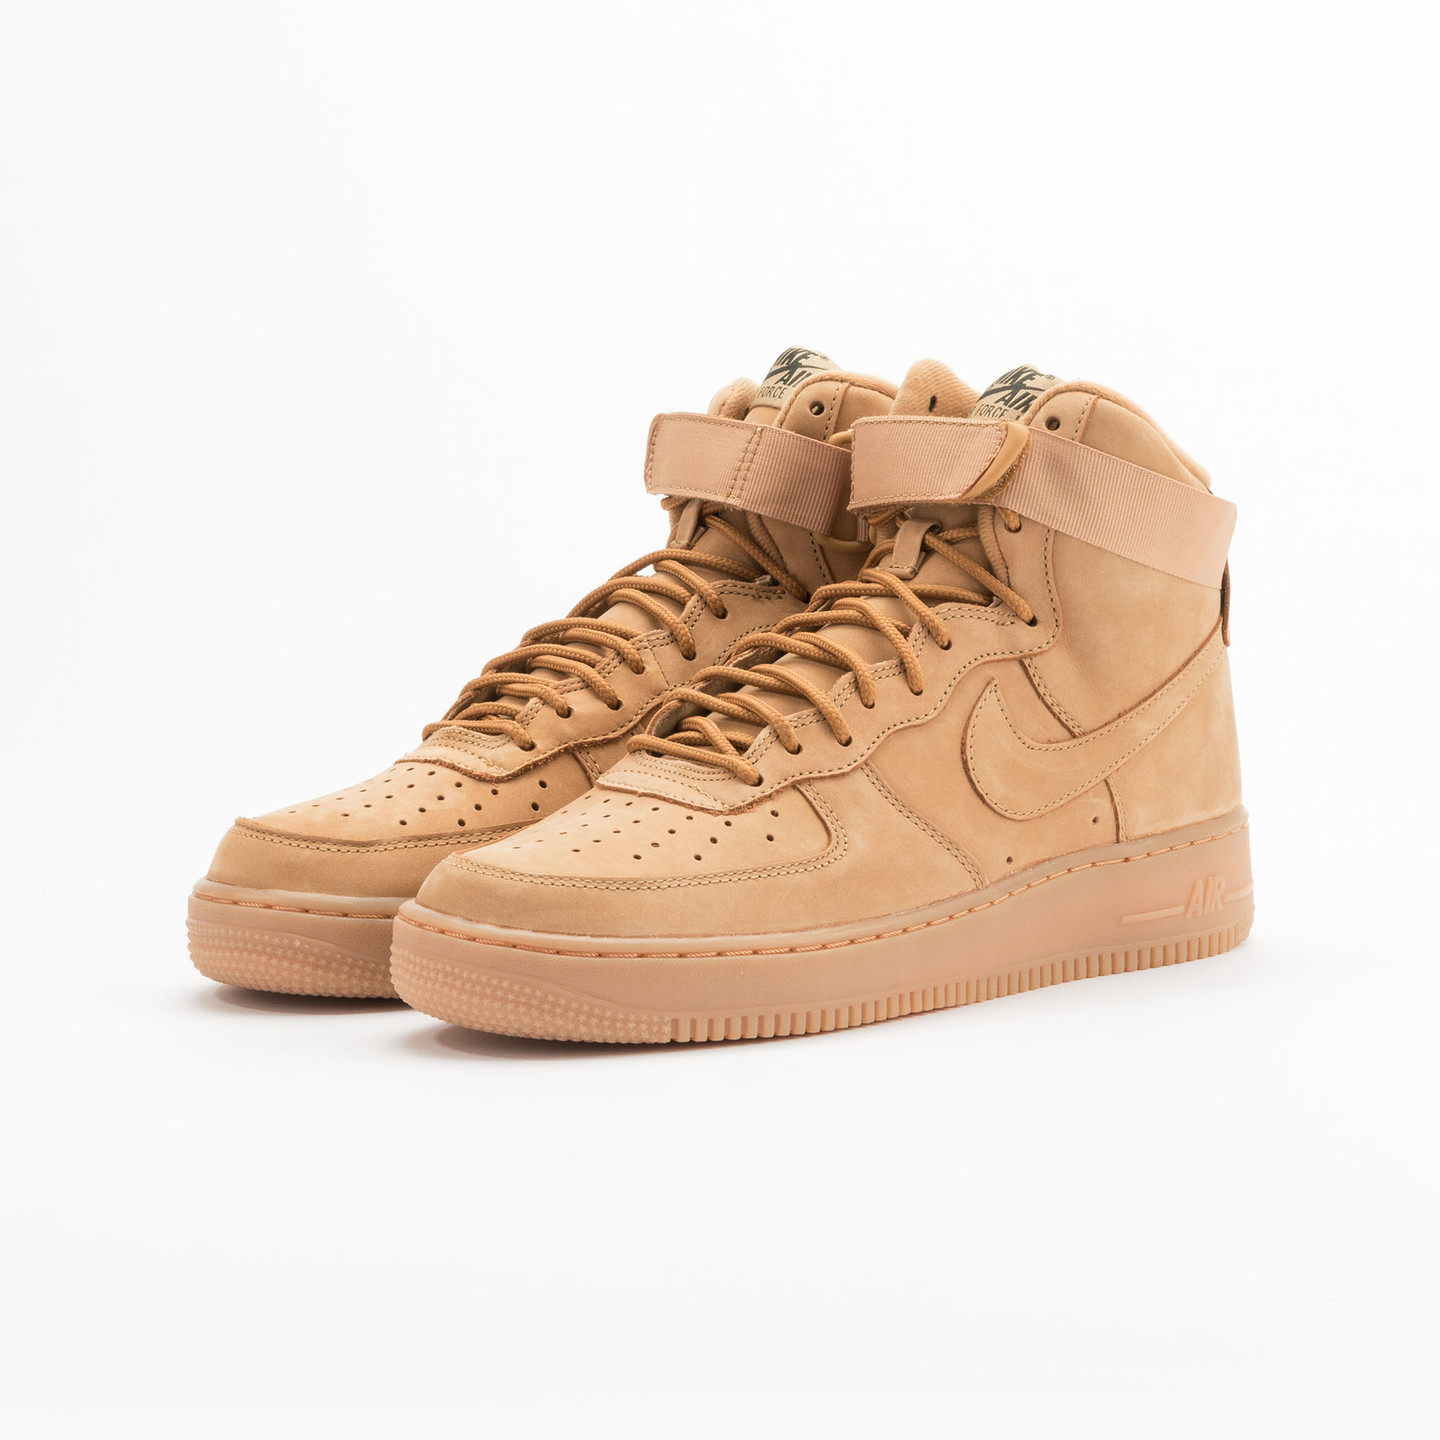 Nike Air Force 1 High ´07 LV8 Flax / Flax 806403-200-44